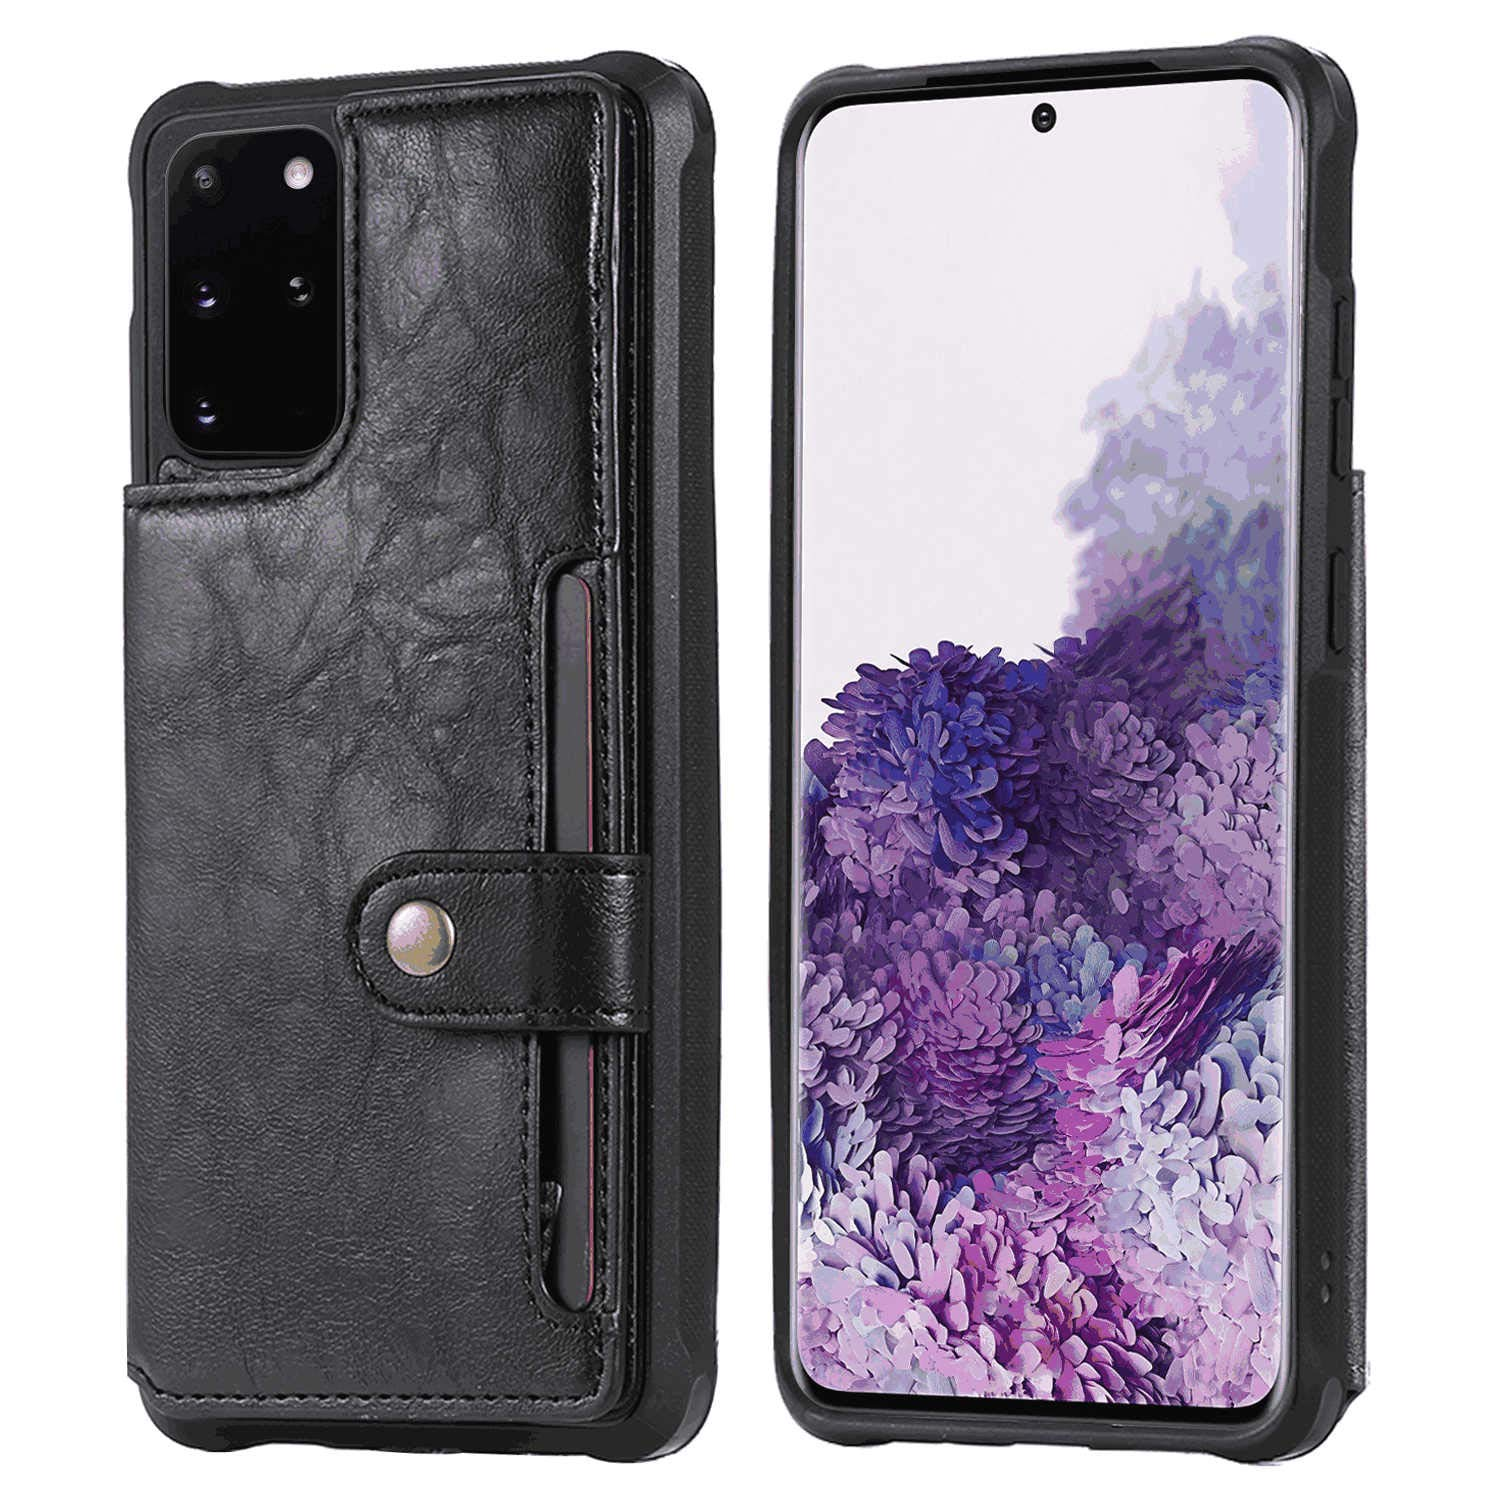 Leather Cover Compatible with iPhone Xs Max, Black Wallet Case for iPhone Xs Max